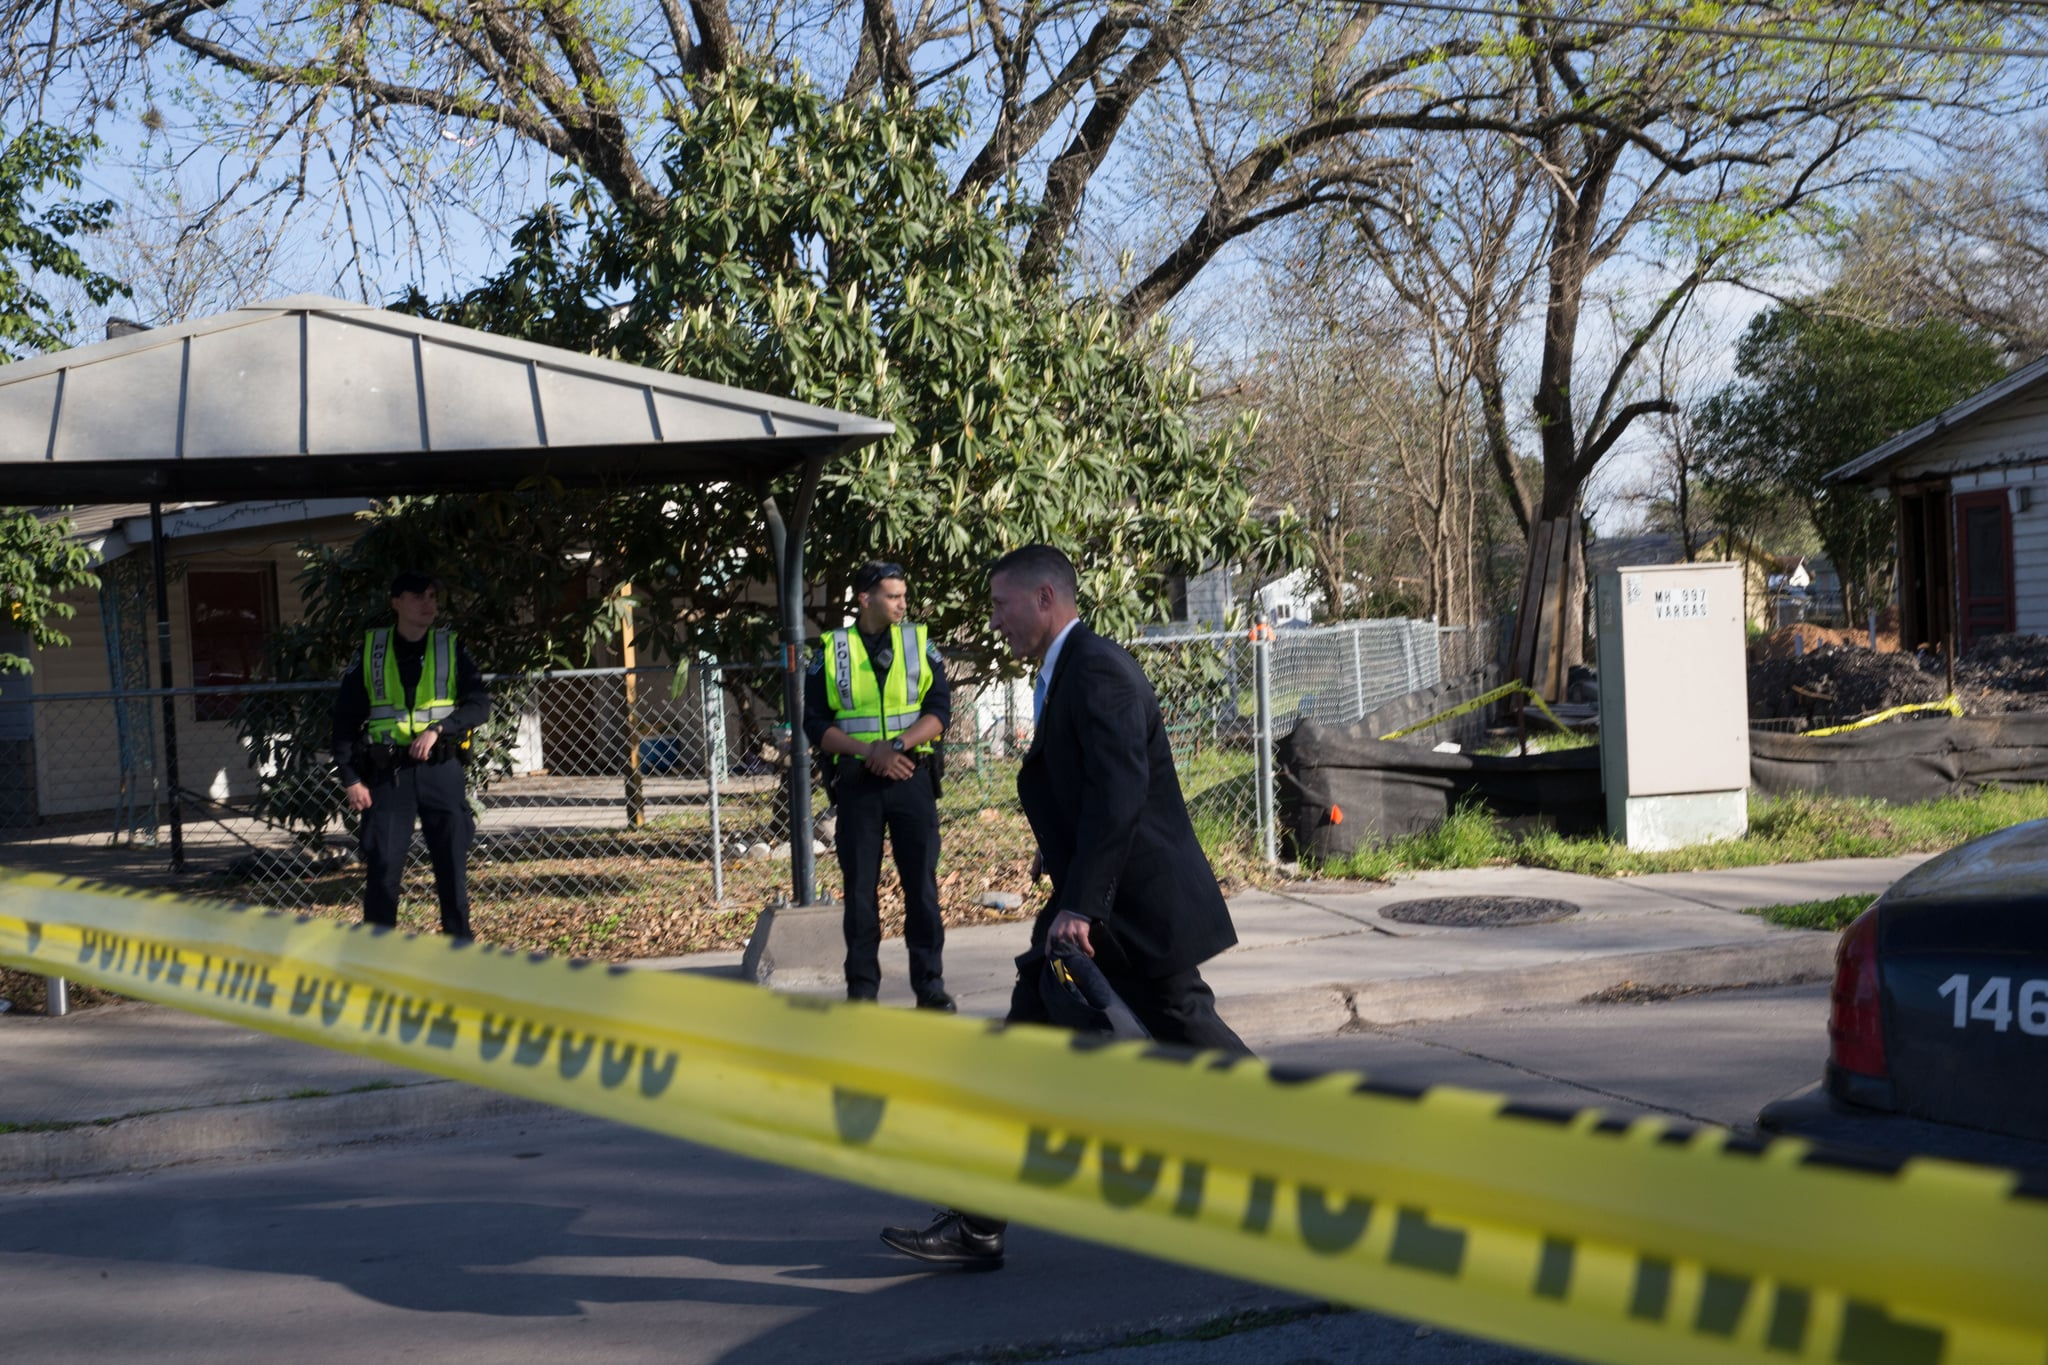 The scene near Galindo Street in Austin, Texas on March 12, 2018 where a woman in her 70s was injured in an explosion. The incident was the second reported explosion on Monday and the third in two weeks.Two parcel bombs rattled the US city of Austin on Monday, March 12, 2018, ten days after a similar deadly blast, as Texas police said they were investigating the possibility that the attacks were serial hate crimes. The explosions came as Austin, the state capital and a metropolis of two million people, welcomed hundreds of thousands of visitors for the massive South by Southwest entertainment and media festival. / AFP PHOTO / SUZANNE CORDEIRO        (Photo credit should read SUZANNE CORDEIRO/AFP/Getty Images)